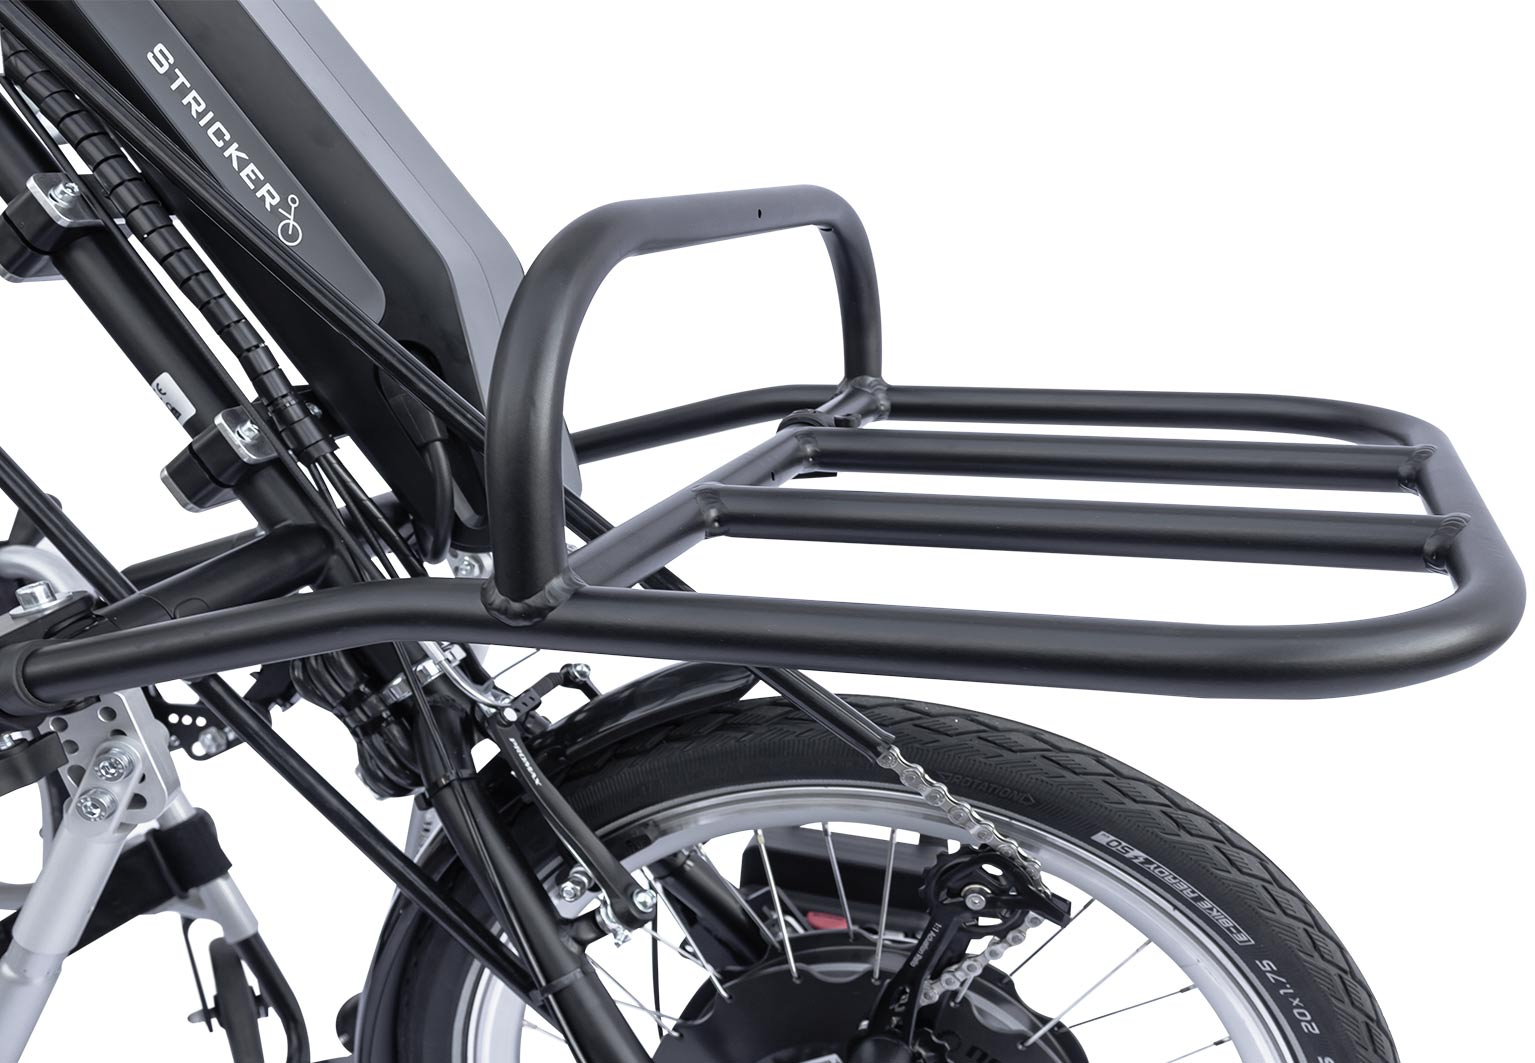 Waldkilo luggage rack